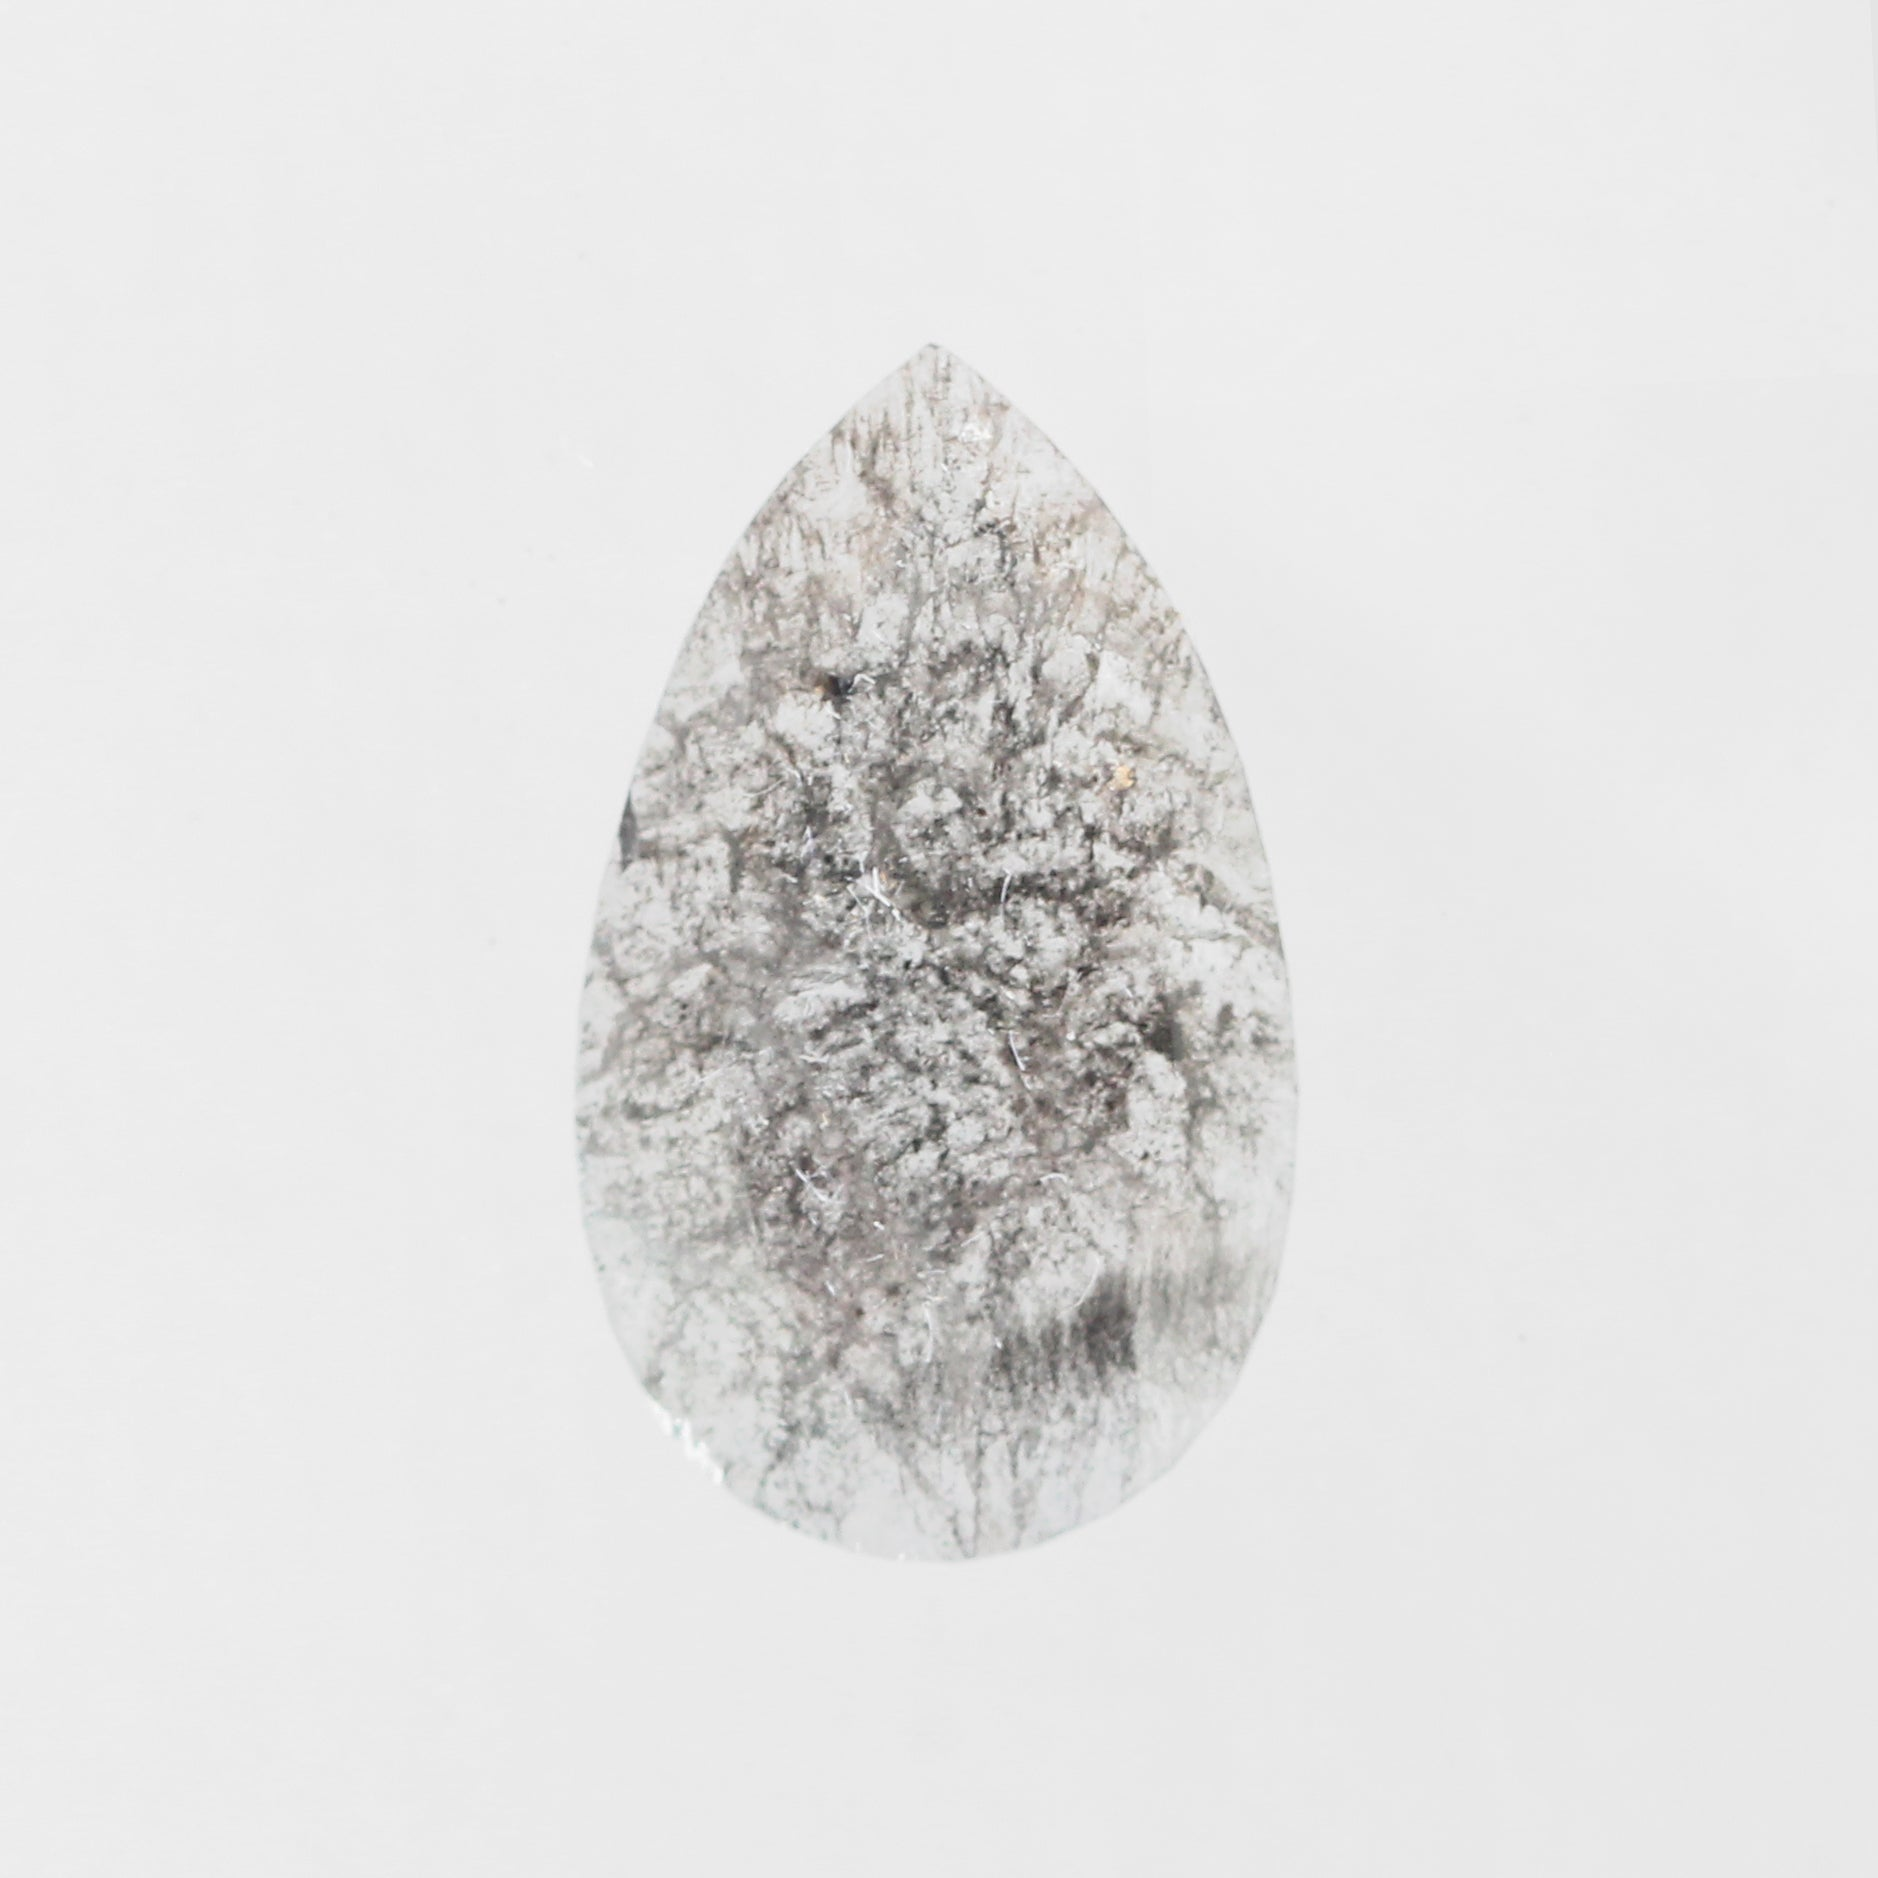 1.33 Carat Pear Diamond- Inventory Code RP133 - Celestial Diamonds ® by Midwinter Co.